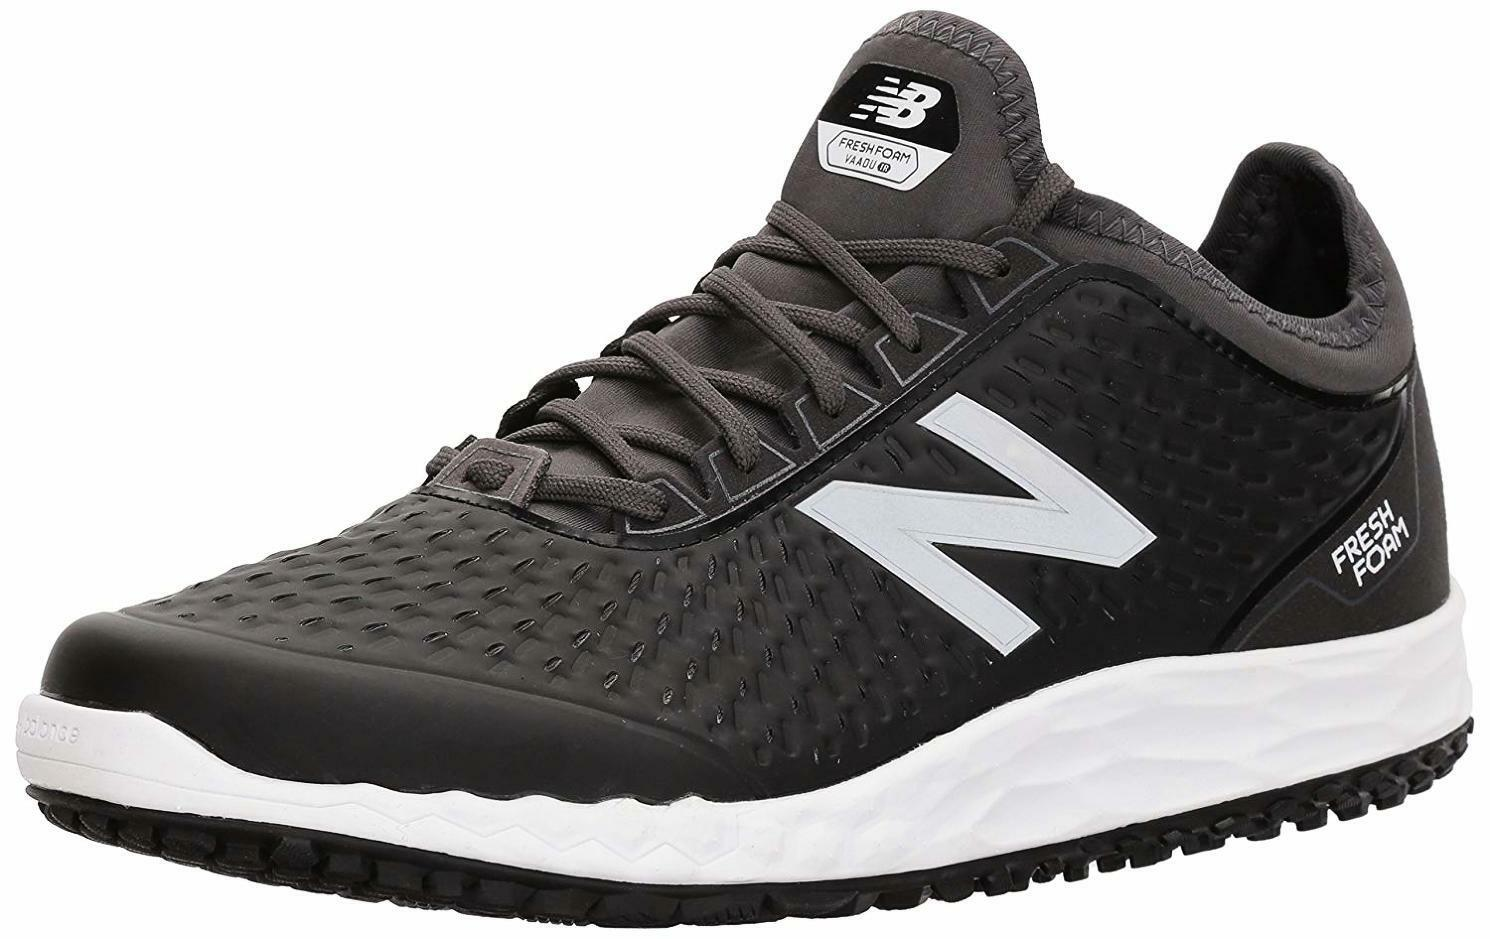 New Balance Men's Vado V1 Fresh Foam Cross Trainer - Choose SZ color